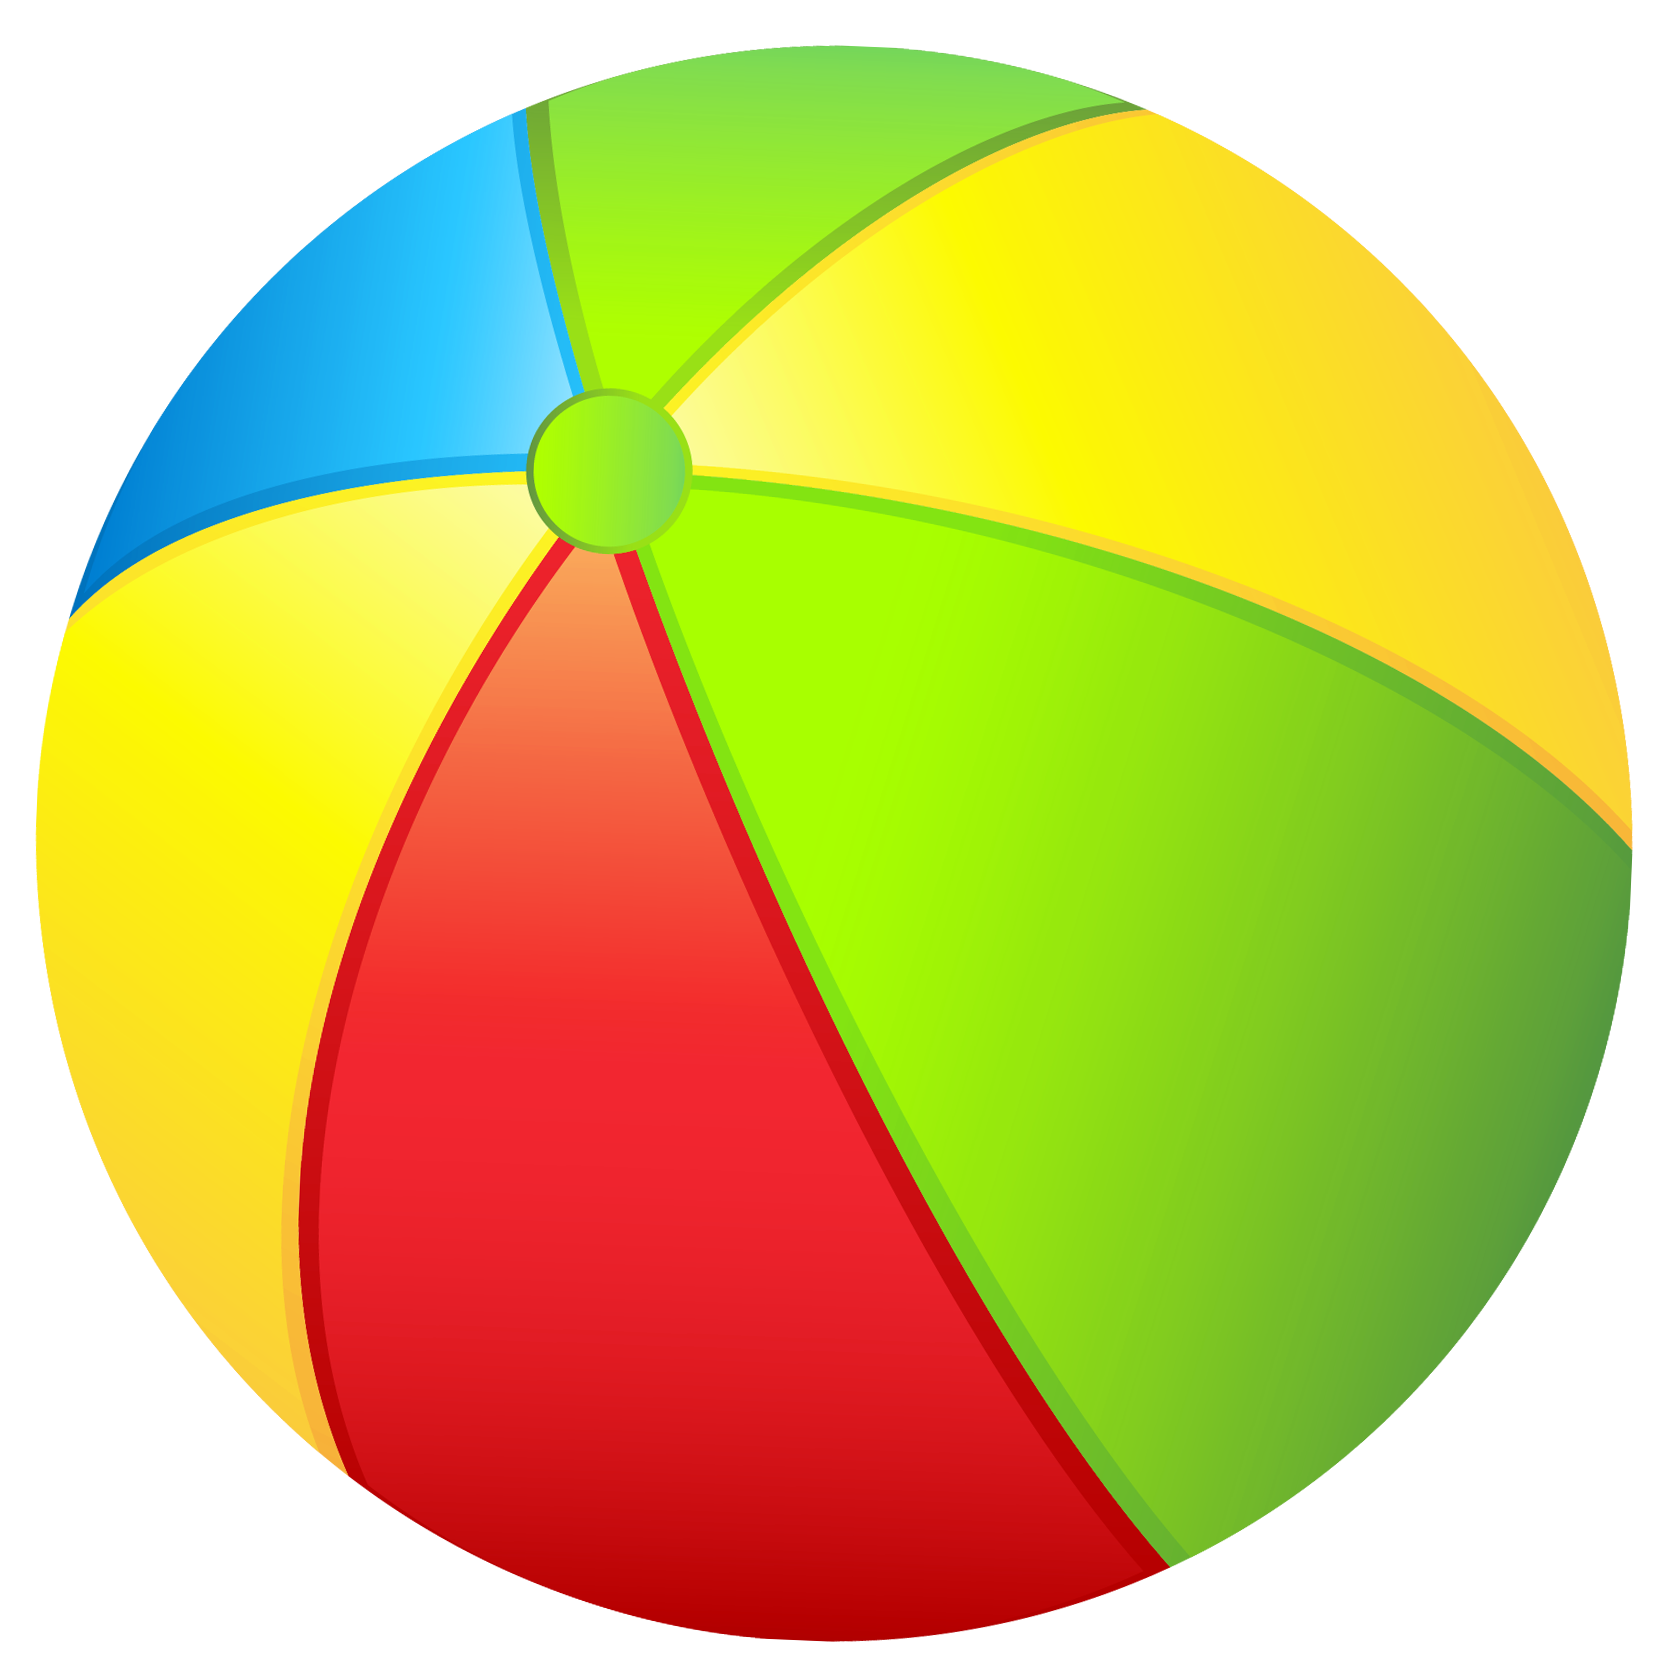 1660x1665 Transparent Beach Ball Png Clipartu200b Gallery Yopriceville